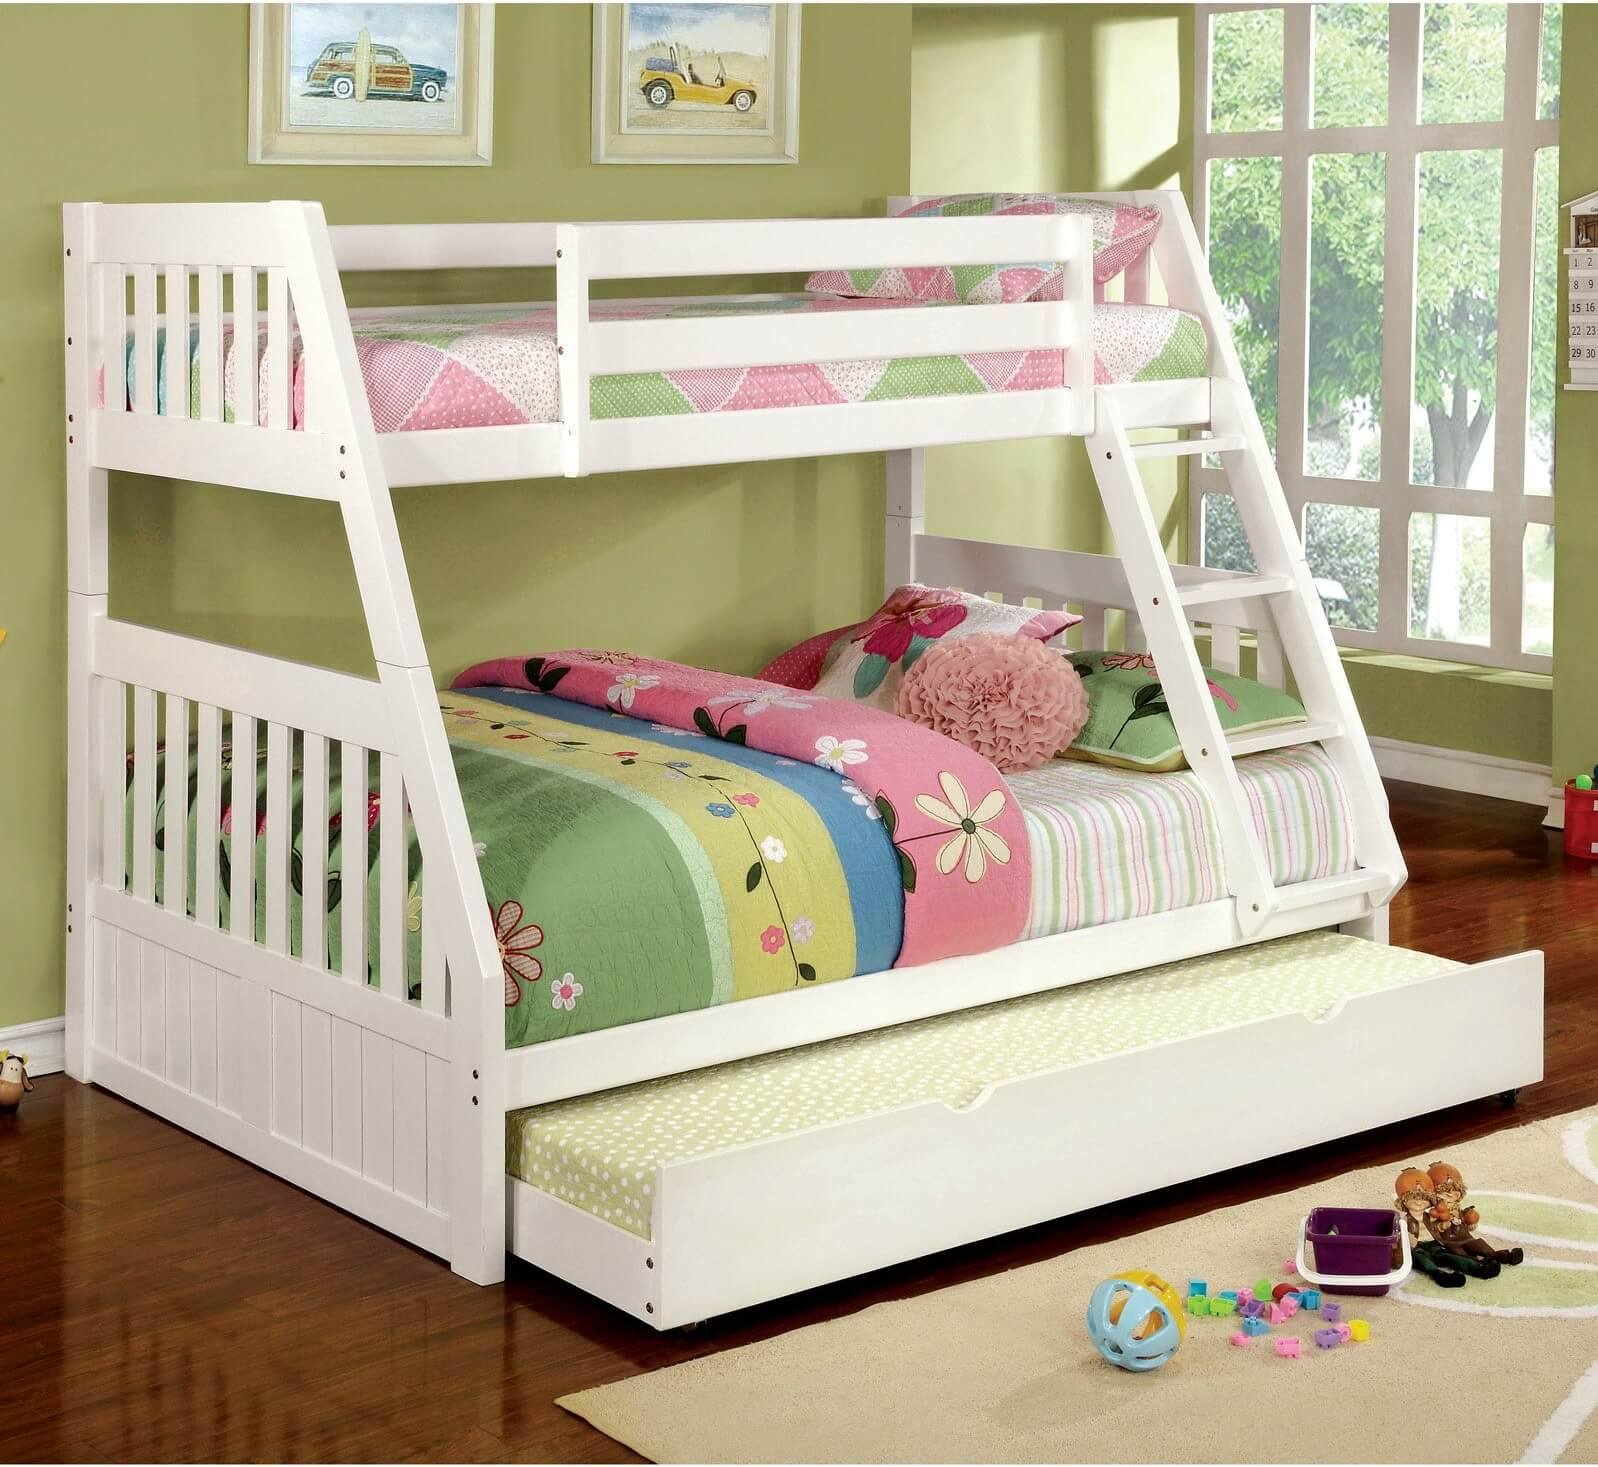 Twin over Full Bunk Bed with Trundle Option